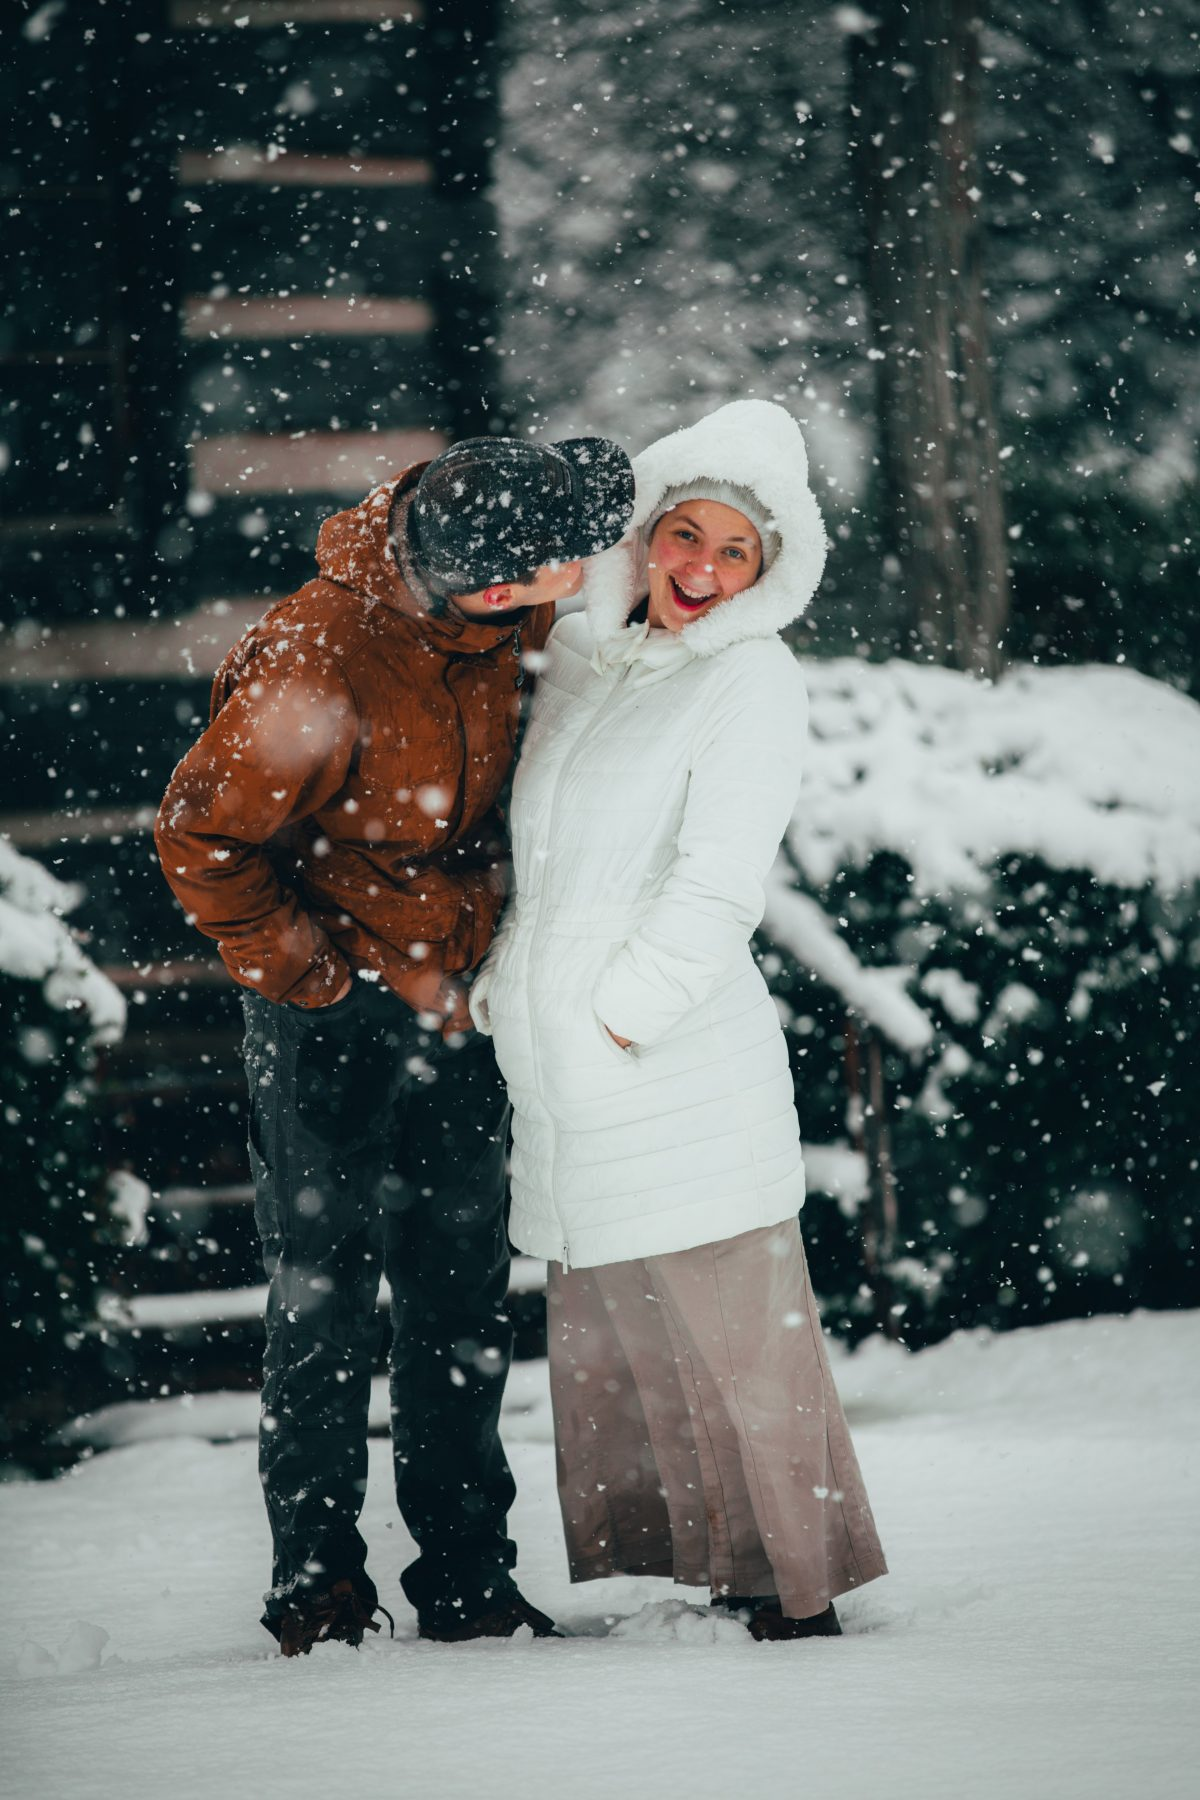 two people kissing in the snow